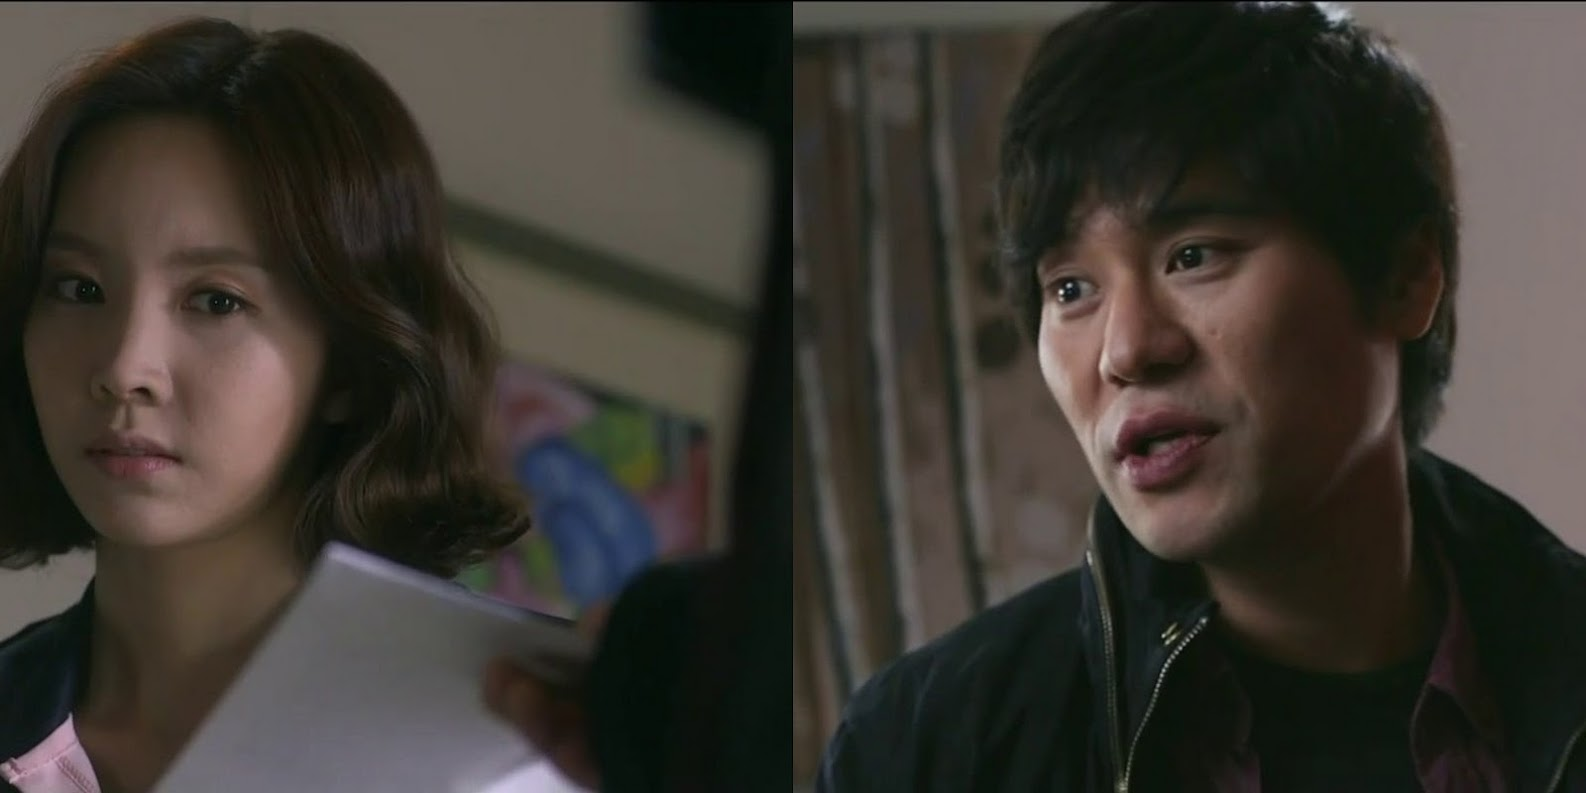 Kyung Hee's day gets worse with the arrival of Detective Fart Face